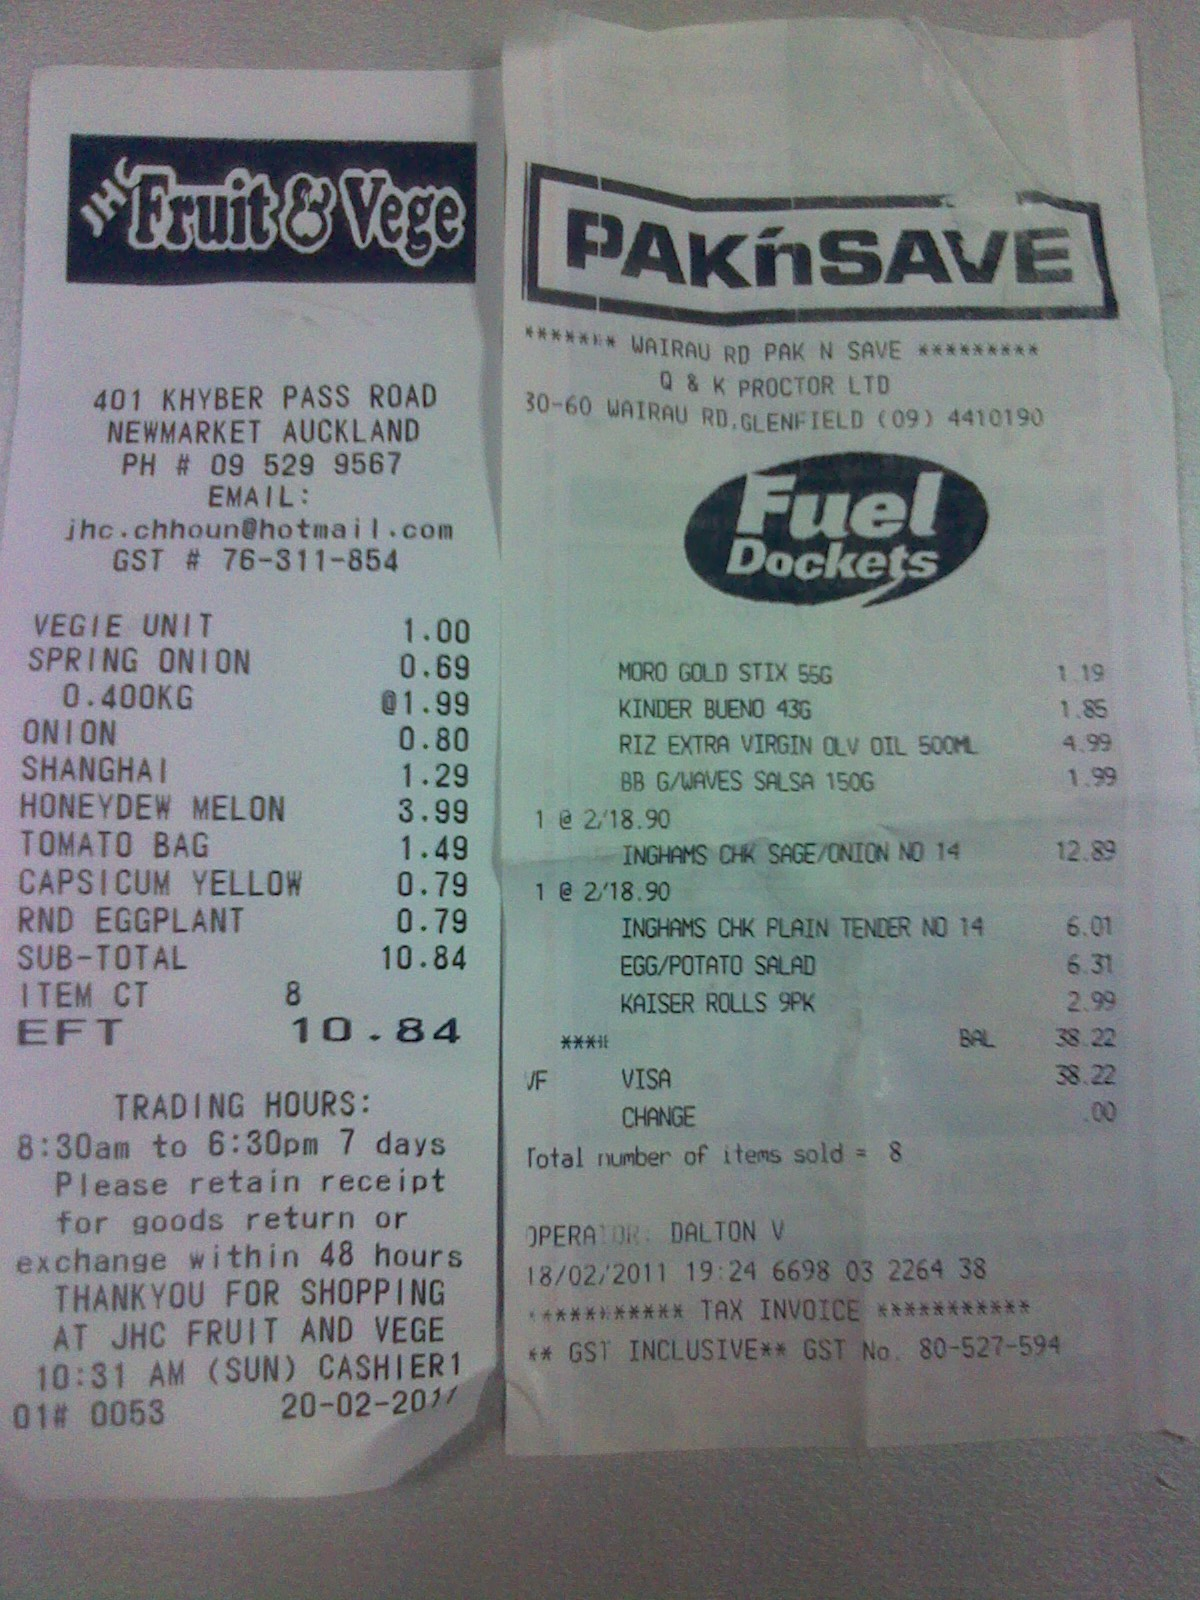 Rent A Car Invoice Pdf February   Nz Muse Sample Quickbooks Invoice with Instaform Invoices And Estimates Pro Pdf Oh And I Should Probably Have Explained Earlier That Where I Havent  Uploaded Separate Receipts For Meatproduce Its Because  American Depository Receipts Advantages And Disadvantages Excel